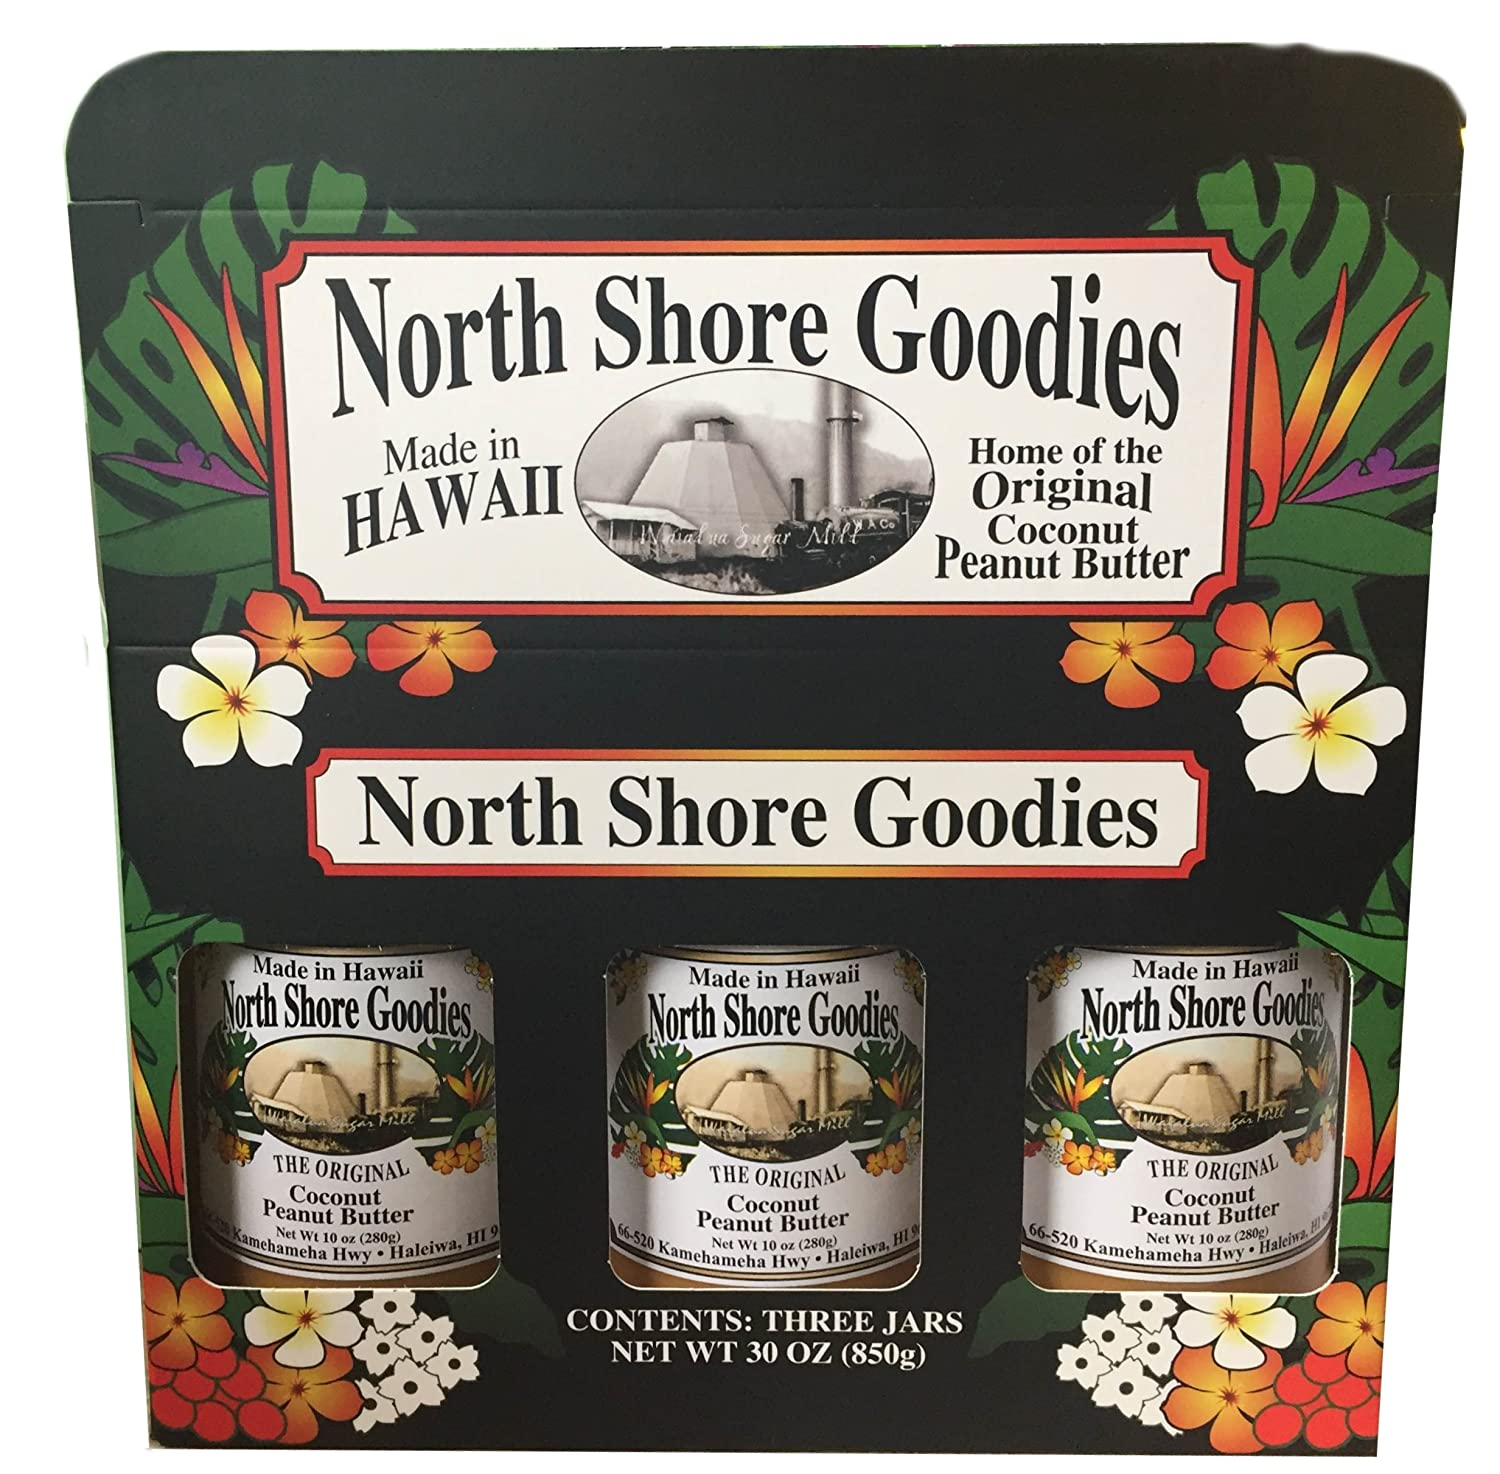 Hawaiian North Shore Goodies All Original Coconut Peanut Butter Gift Box by North Shore Goodies